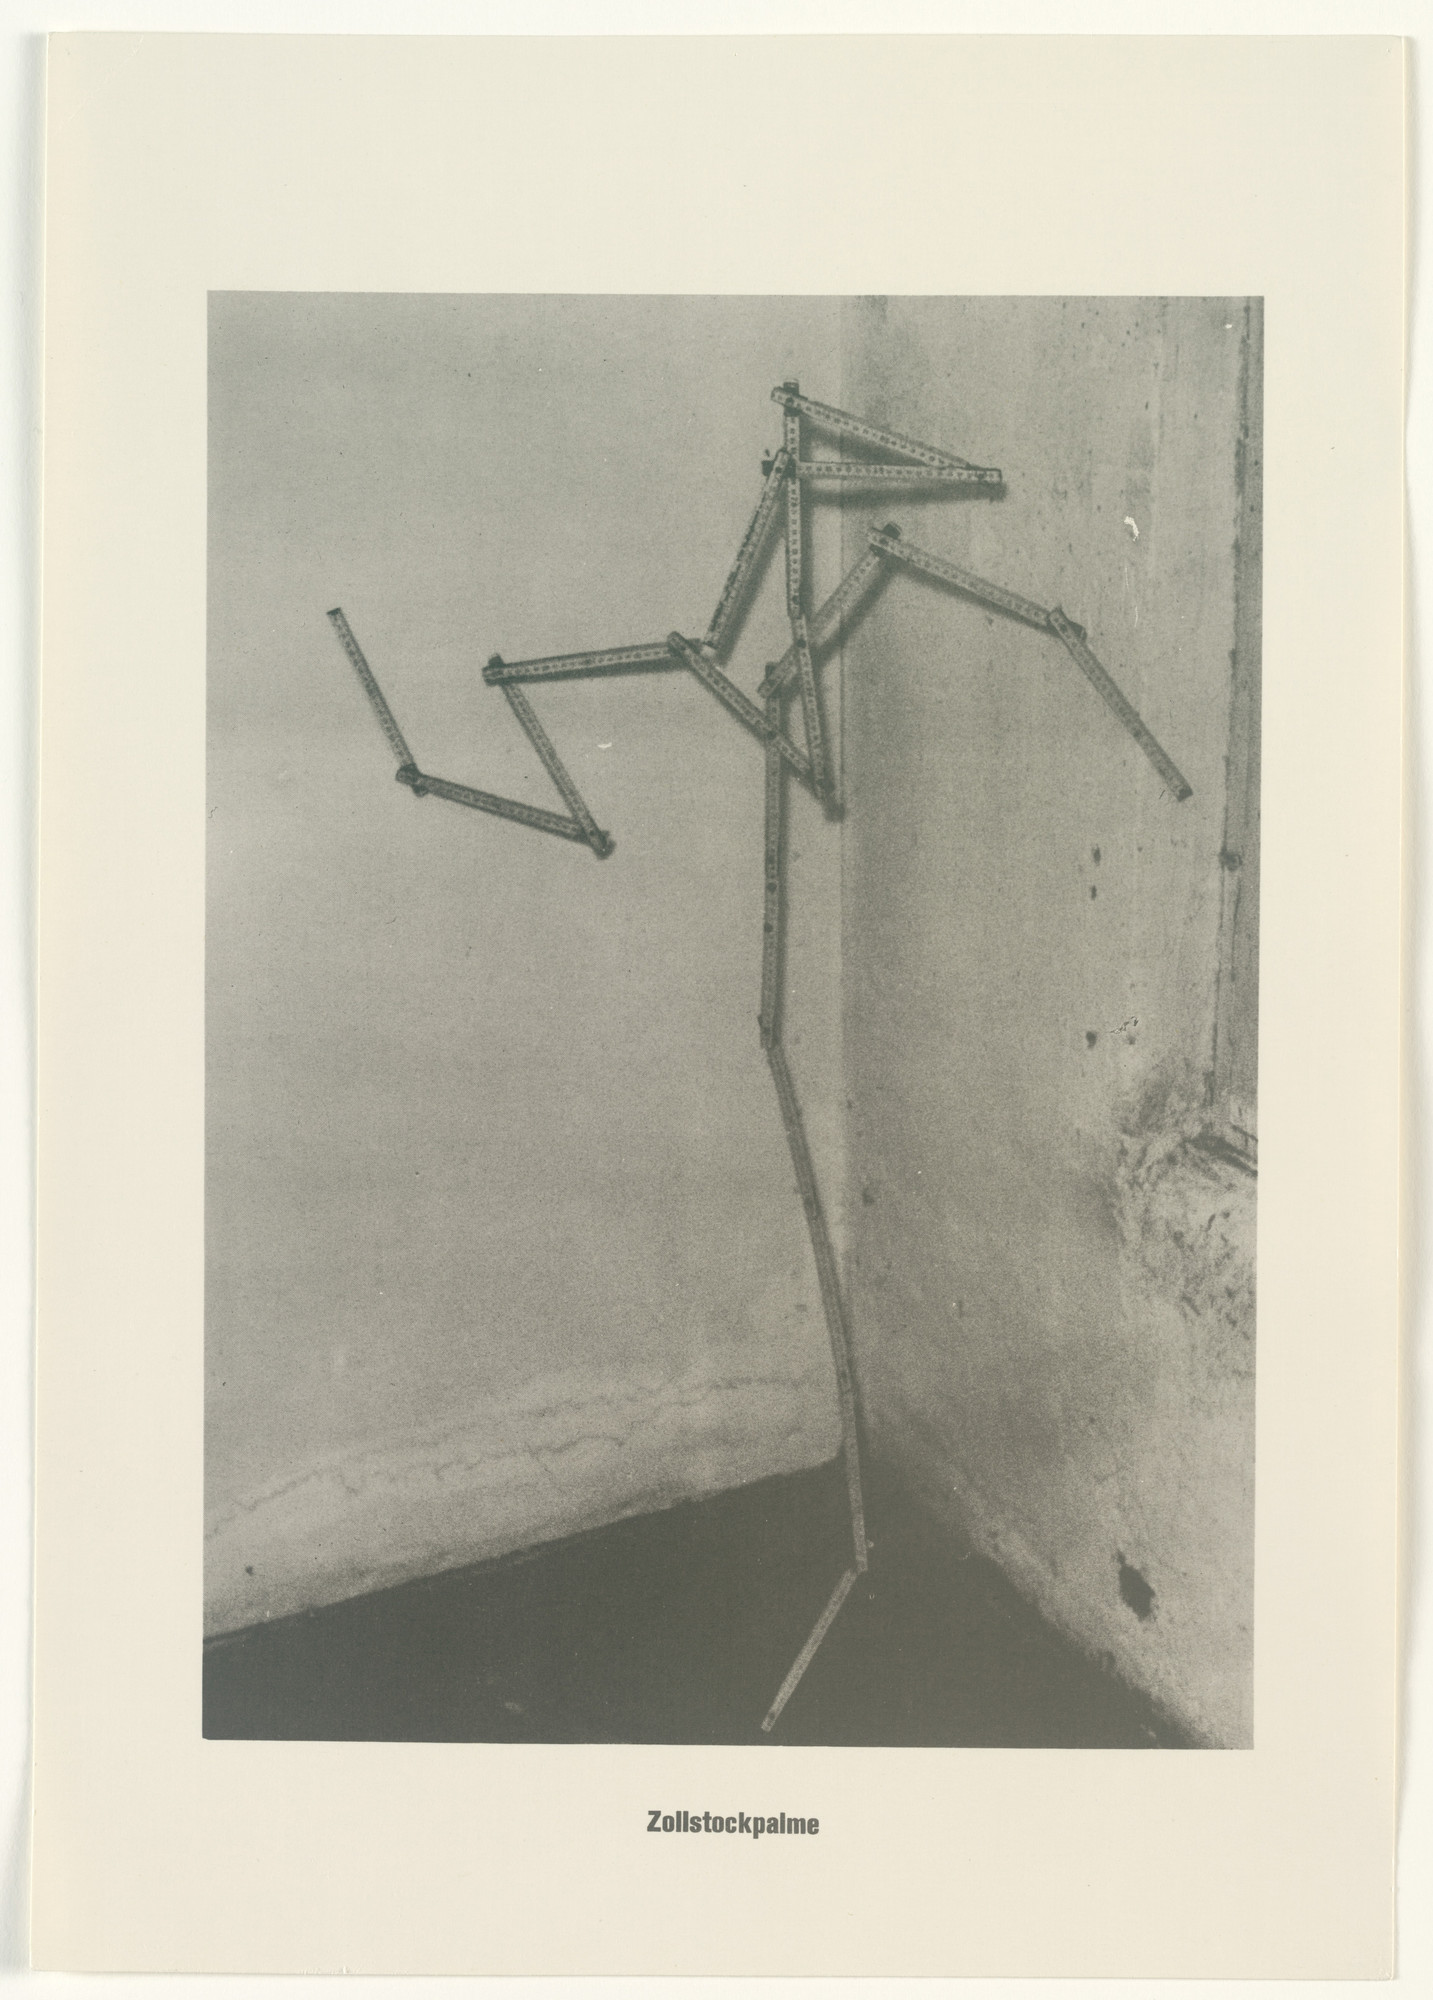 Sigmar Polke, Christof  Kohlhöfer. Measuring Stick Palm Tree (Zollstockpalme) from The Palm Tree Series (Palmenserie) from .....Higher Beings Ordain (.....Höhere Wesen befehlen). 1966, published 1968